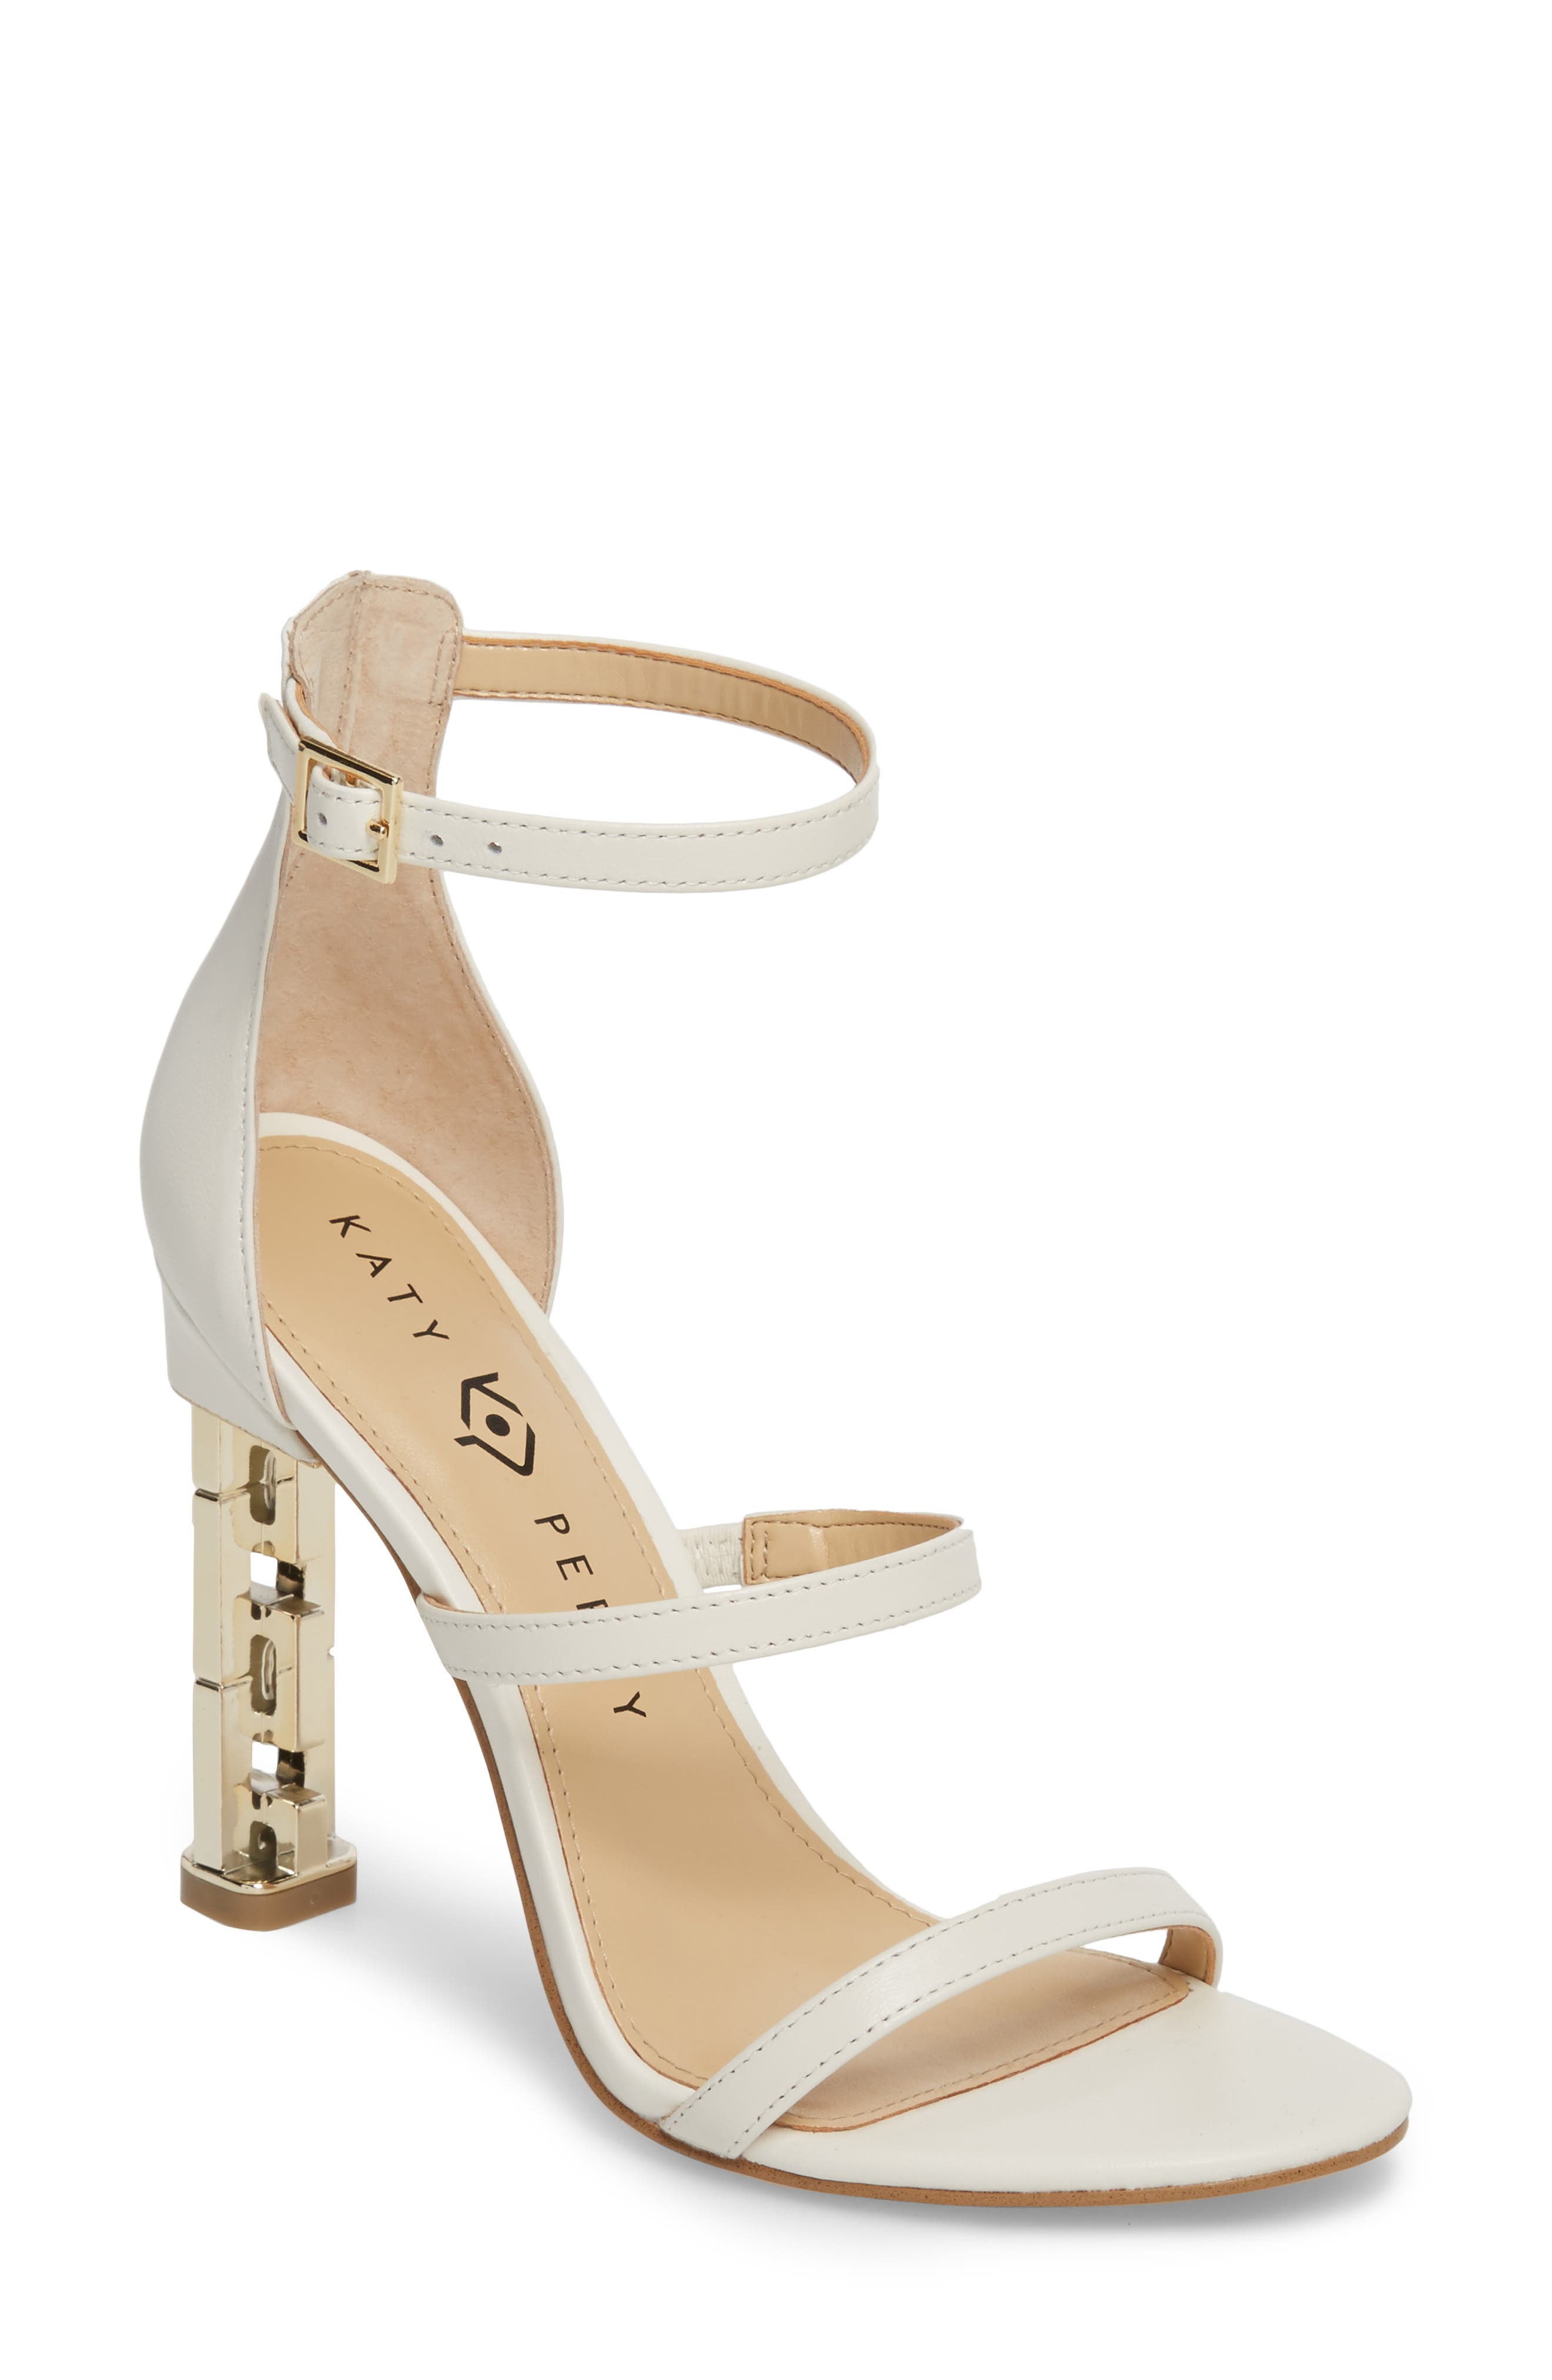 Ankle Strap Sandal,                             Main thumbnail 1, color,                             IVORY LEATHER